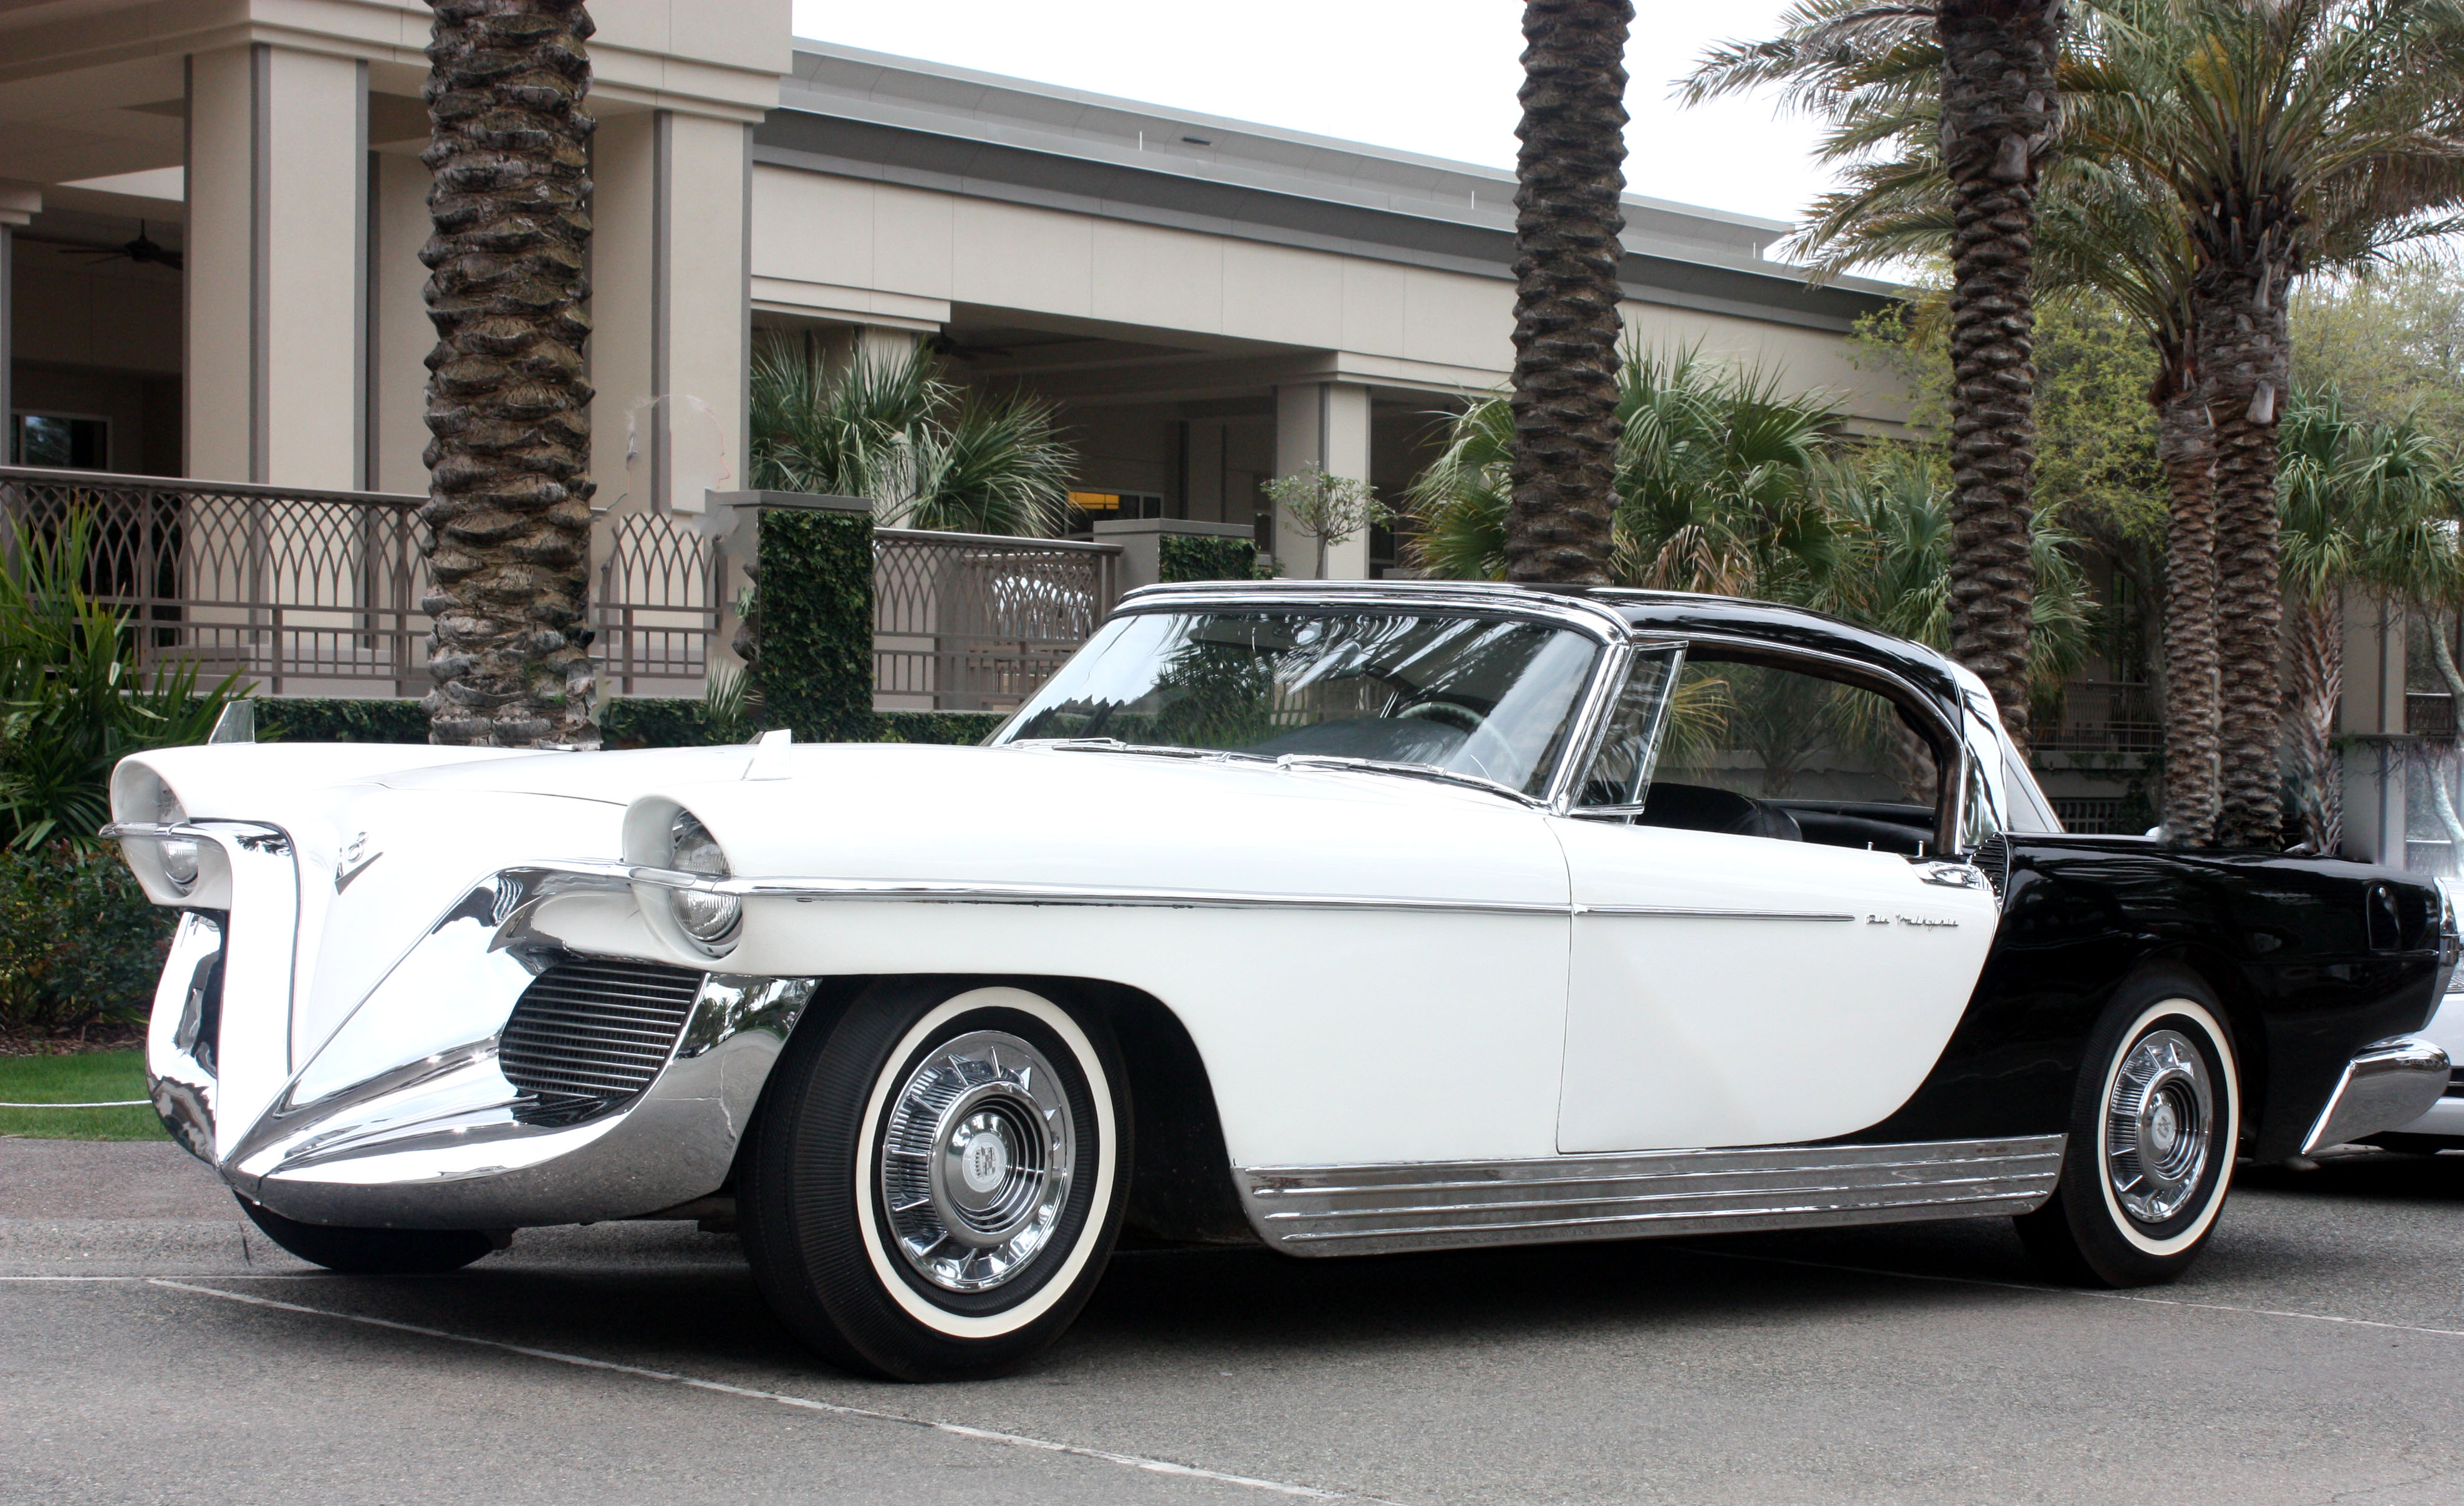 Concept Car 1955 Cadillac Die Valkyrie Offered at Worldwide Auction ...